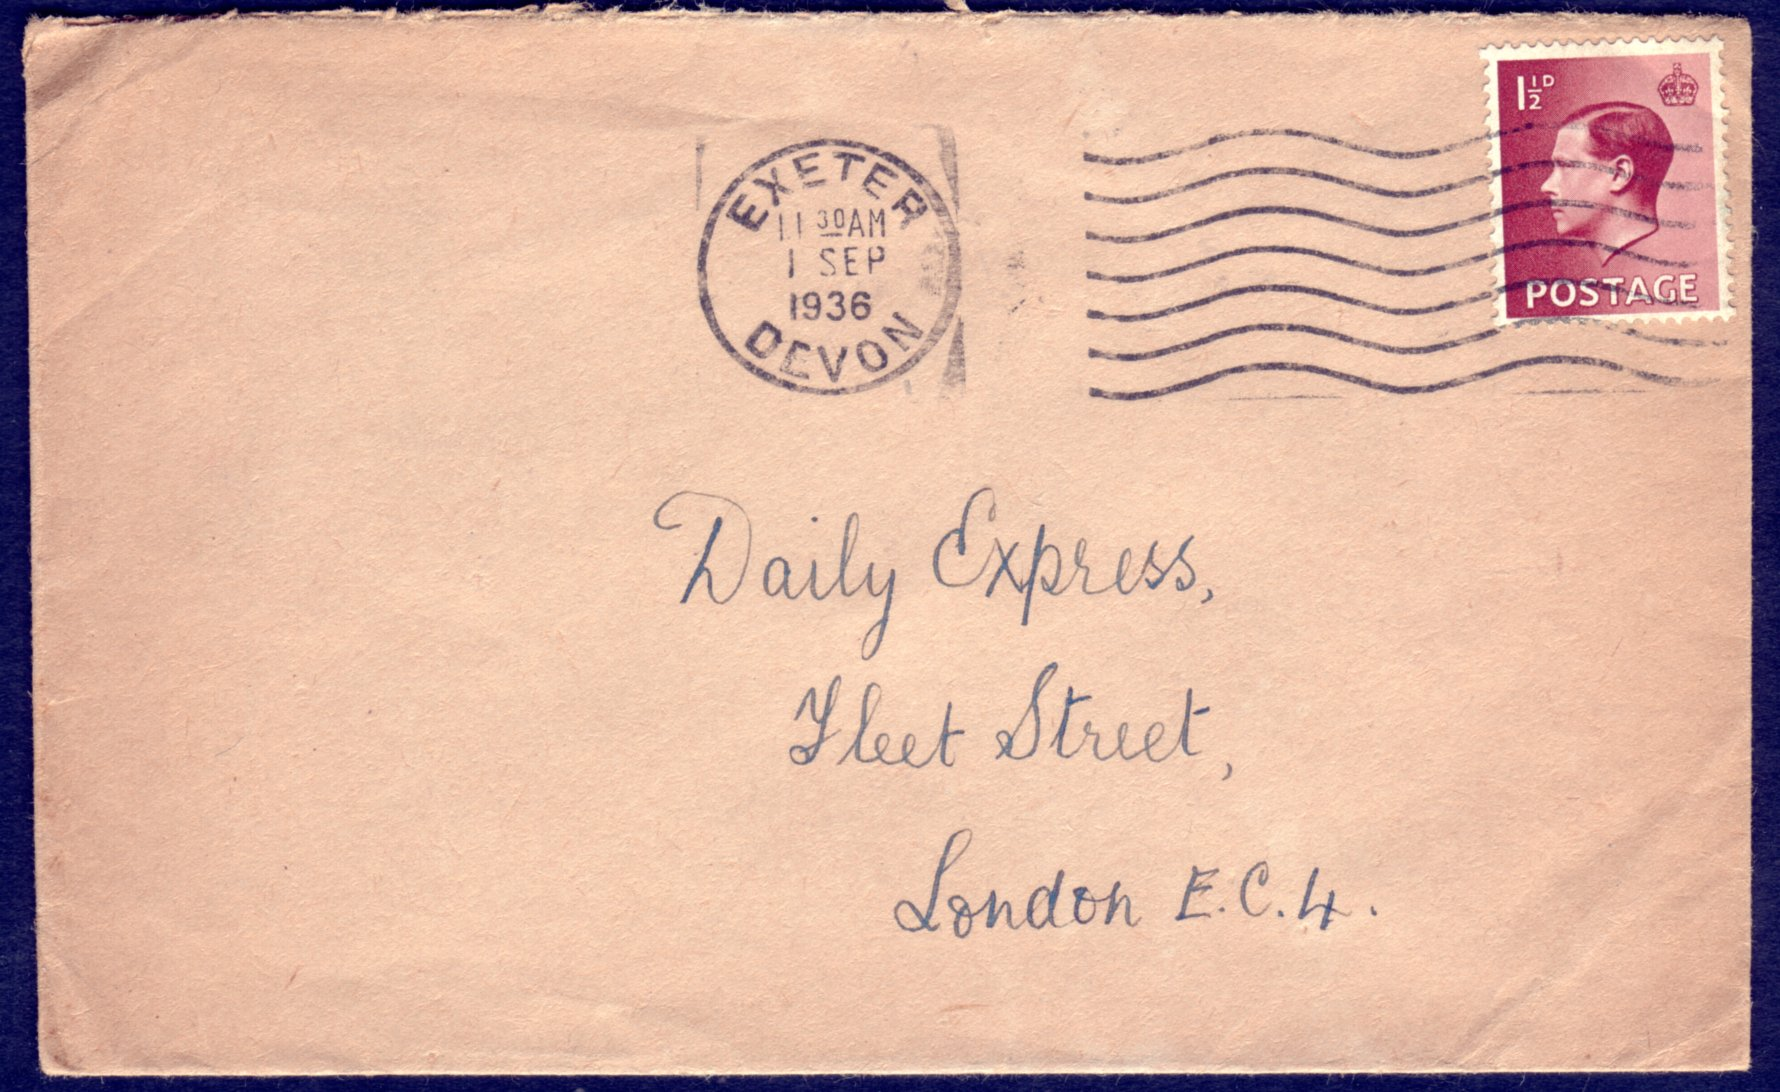 1½d on Exeter Devon FDC 1.9.1936